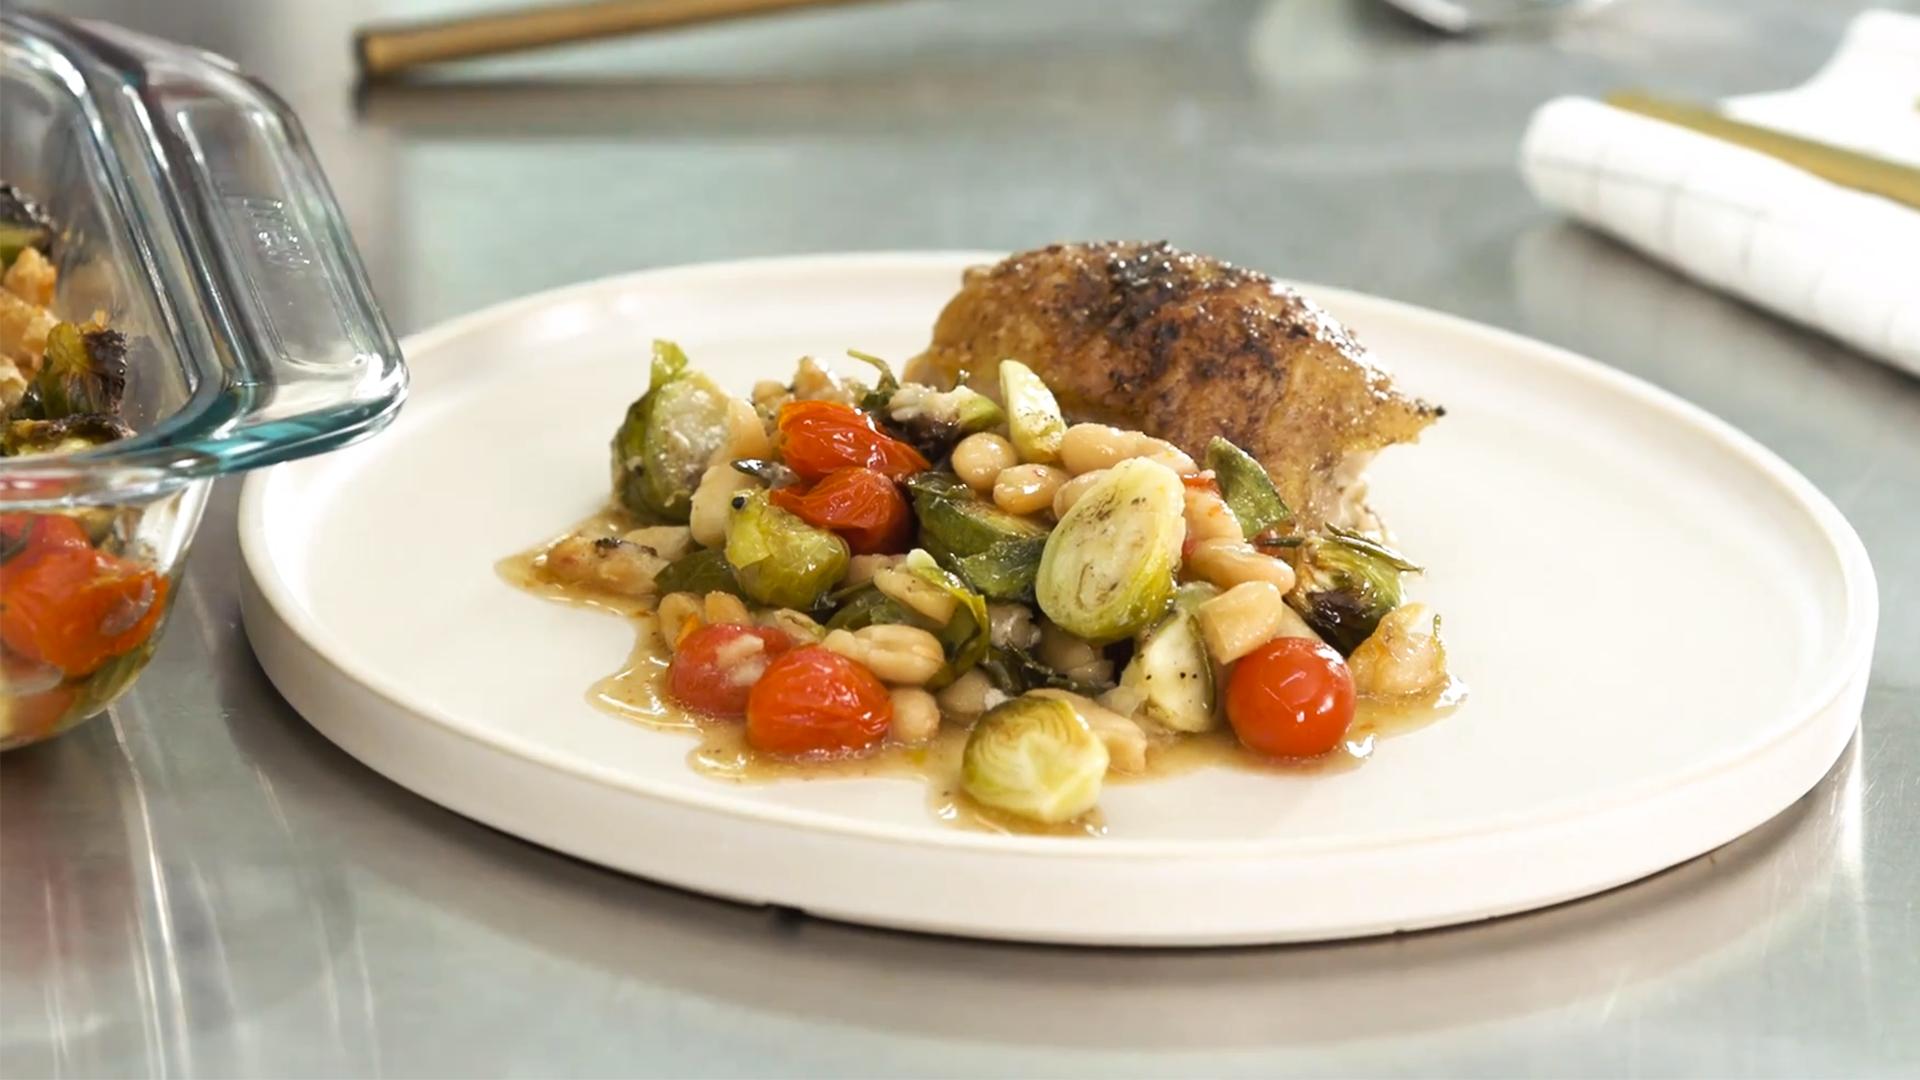 Crispy Baked Chicken Thighs with Brussels and Beans